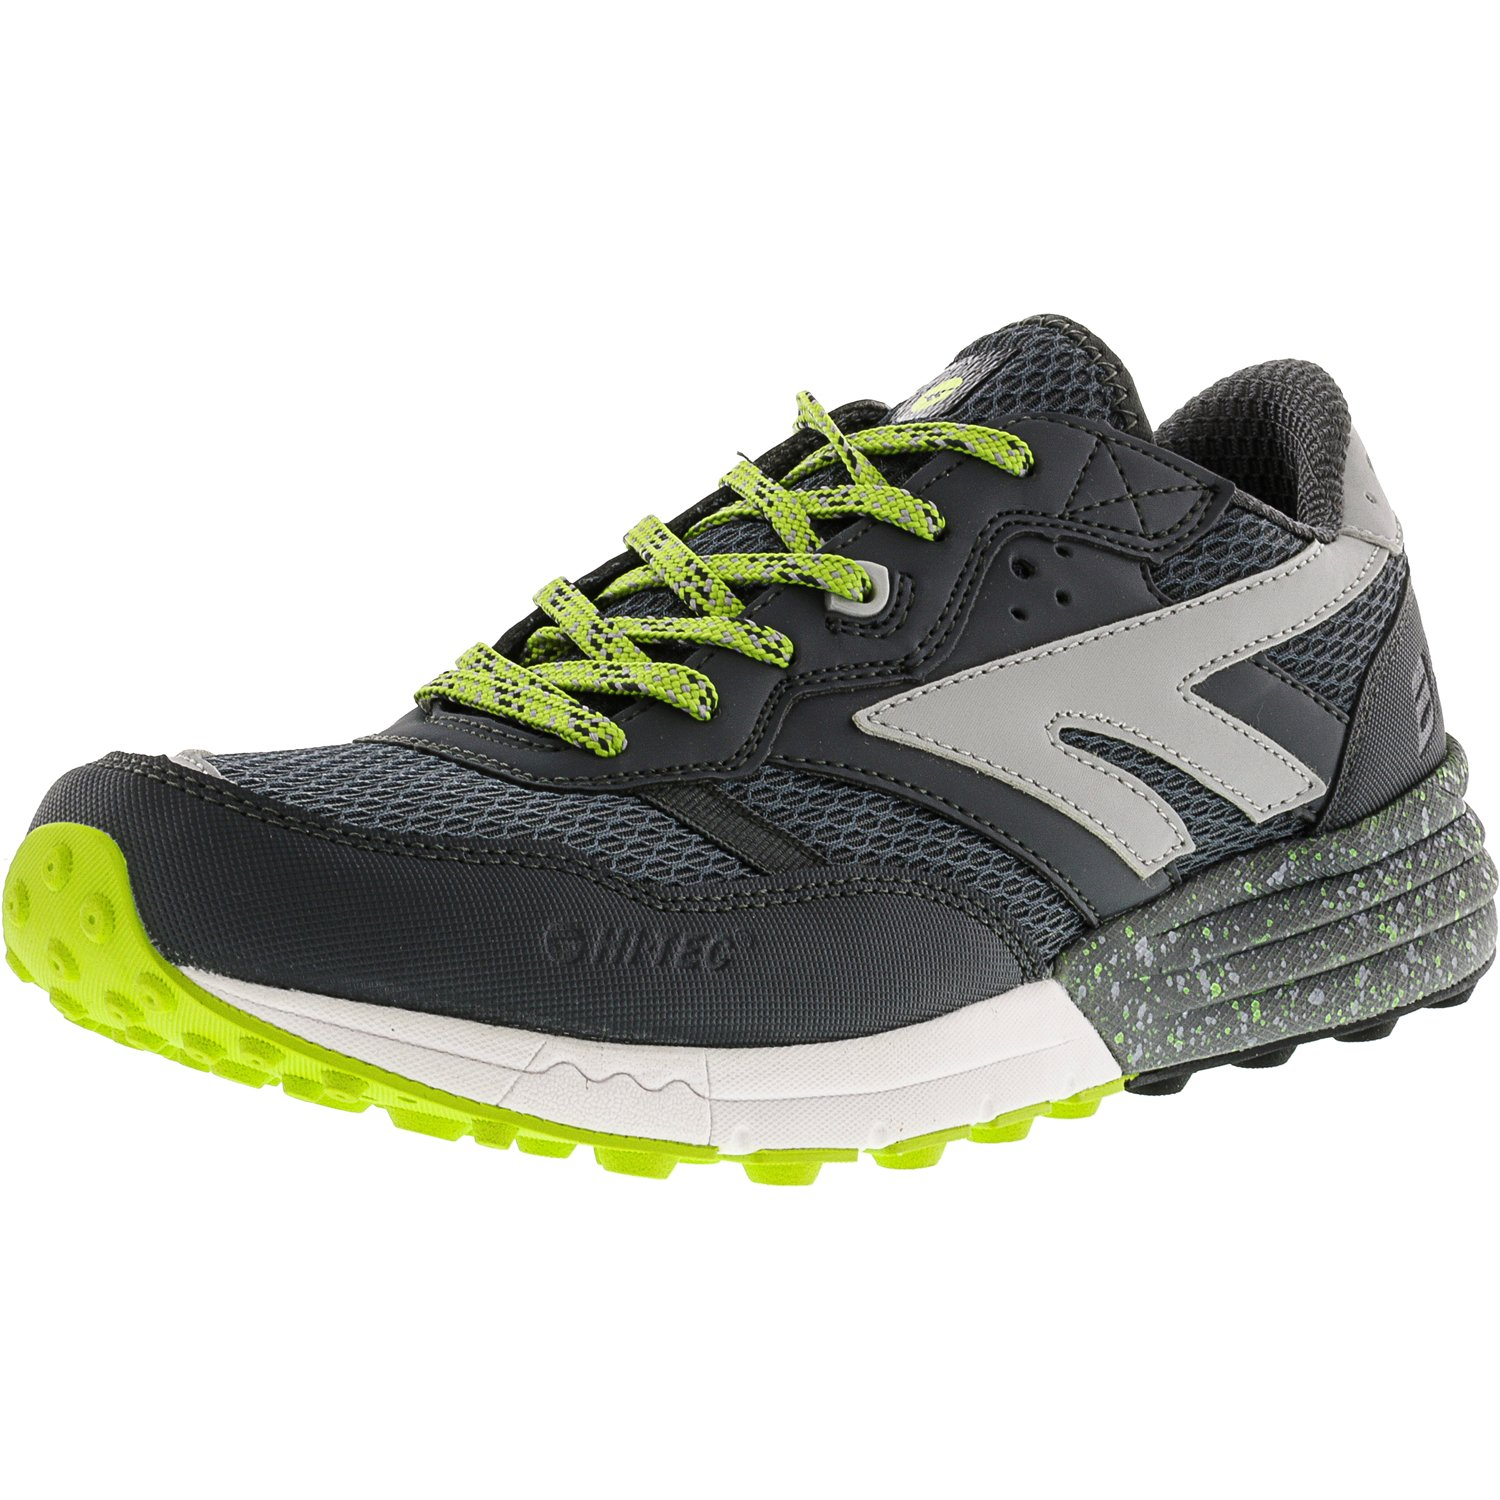 Hi-Tec Men's Badwater Citadel / Limoncello Silver Ankle-High Trail Runner - 9.5M